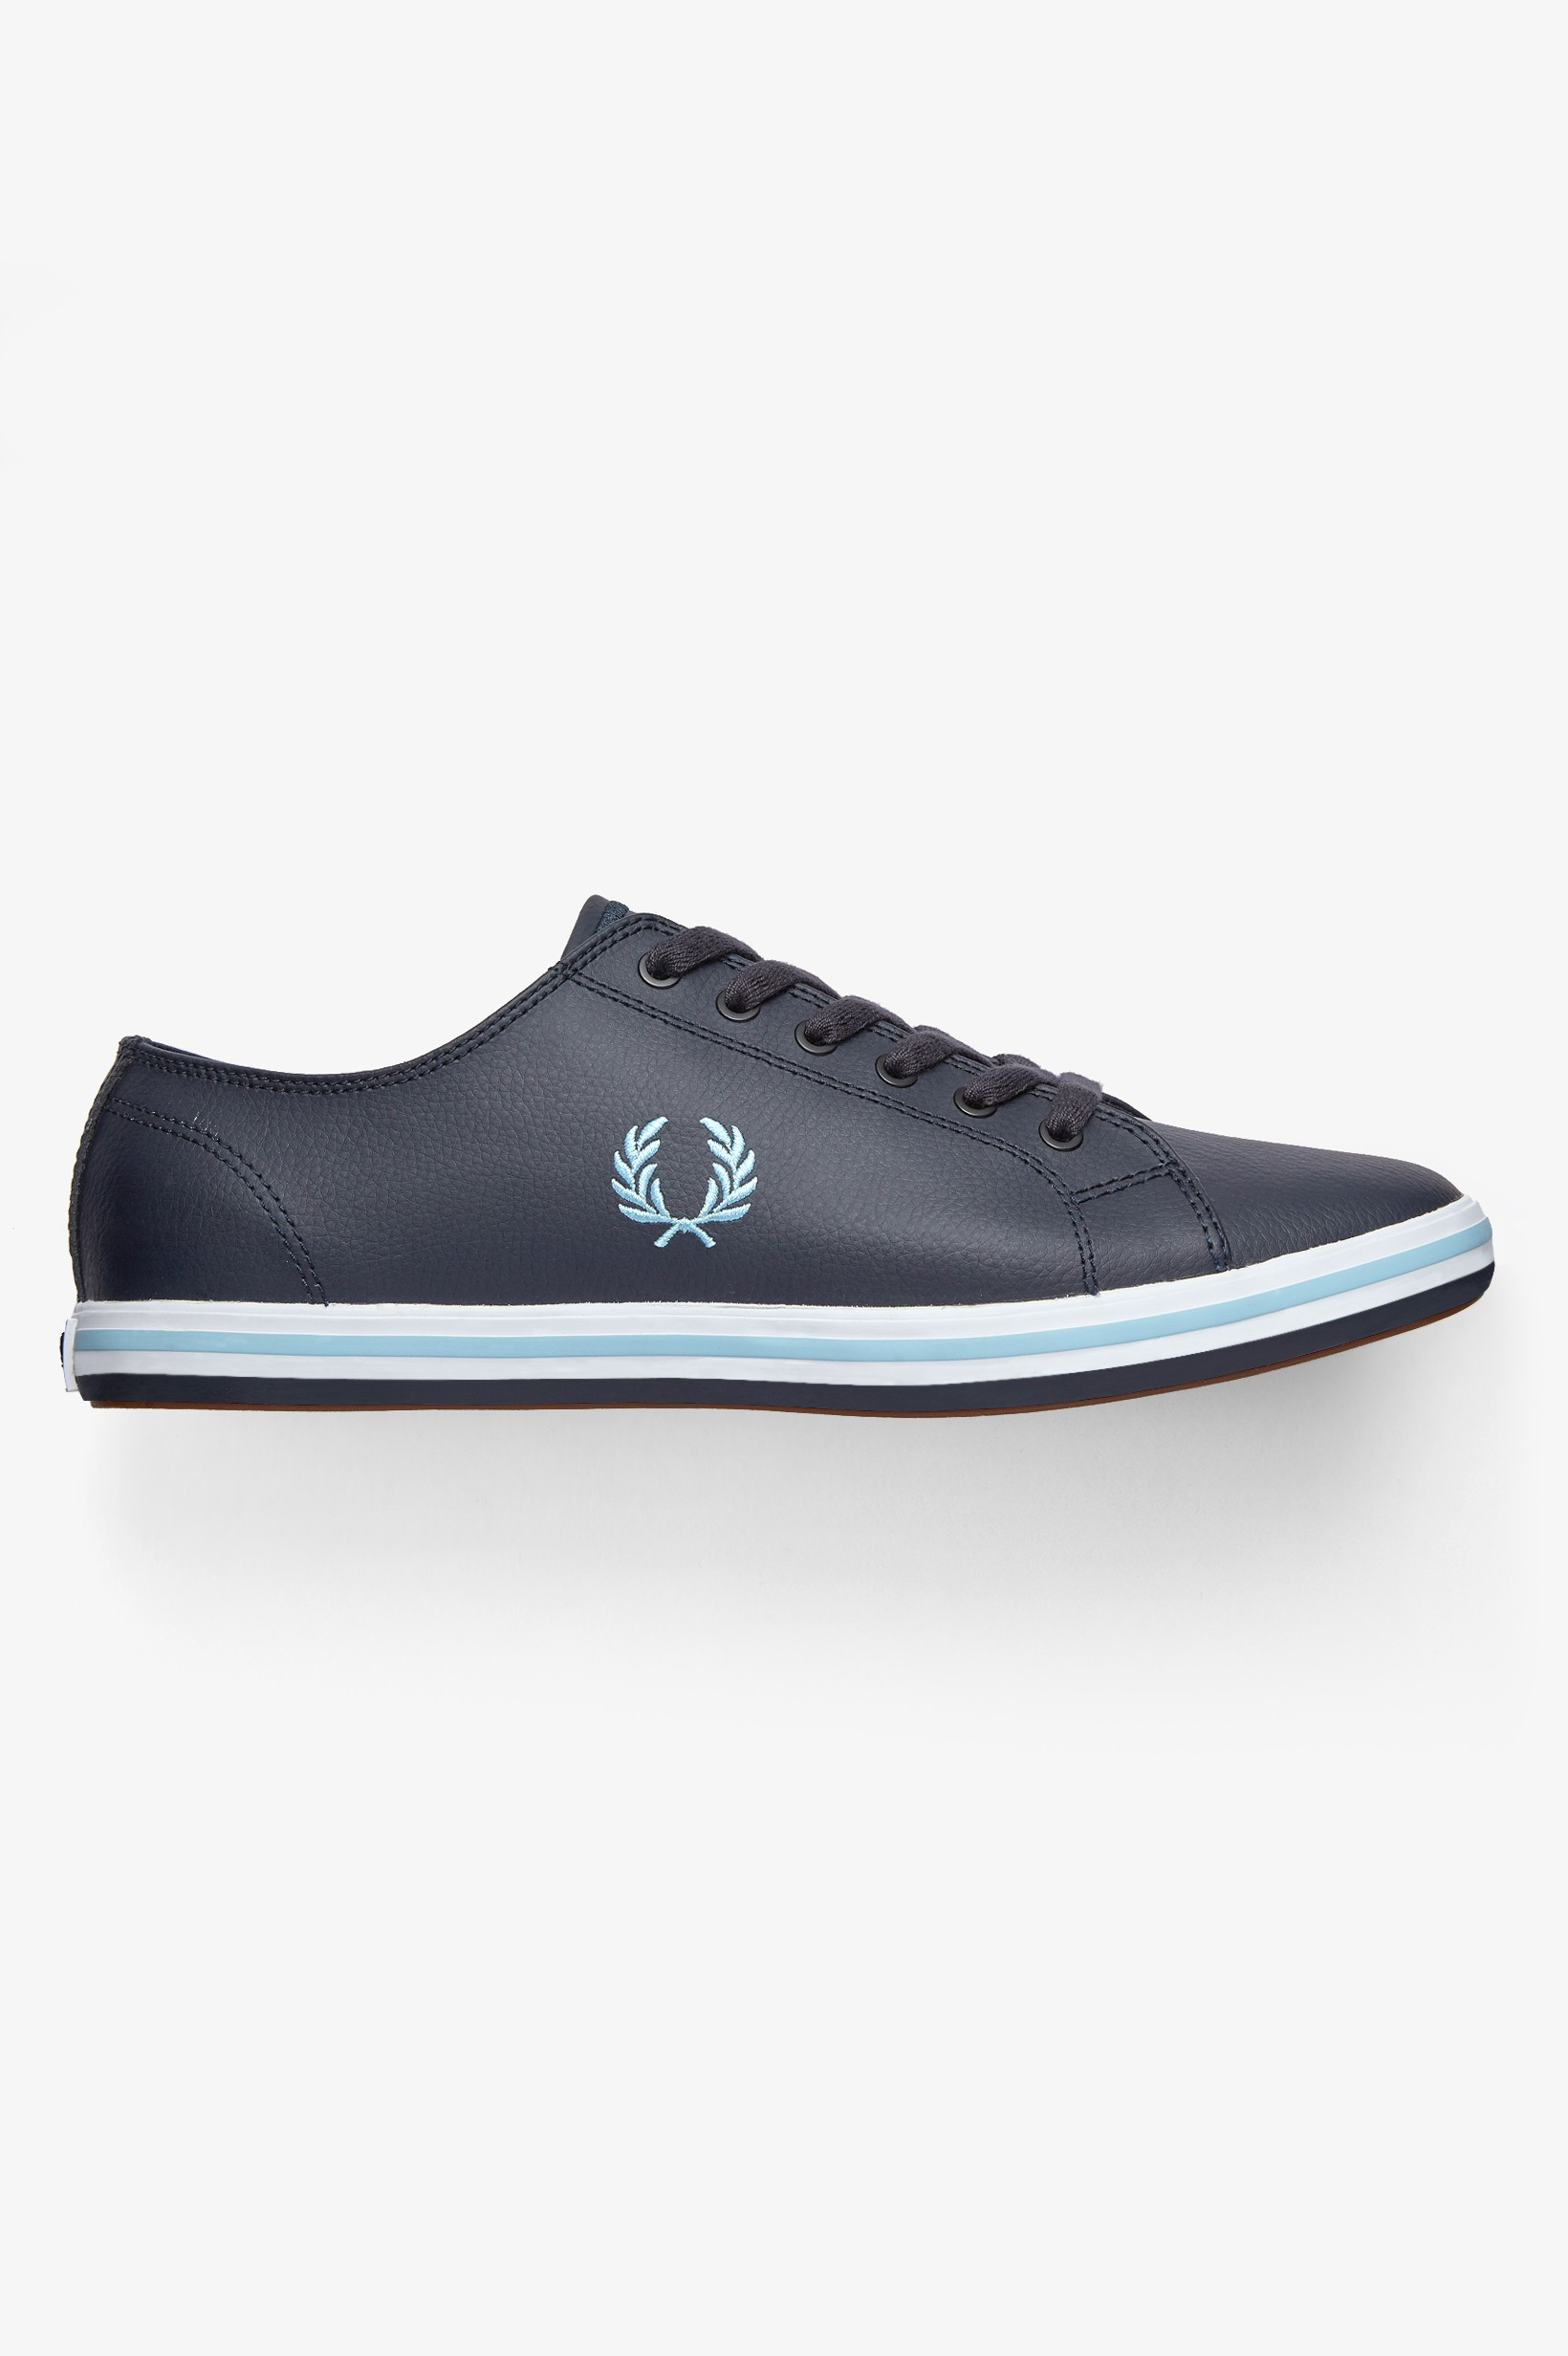 Zapatillas Fred Perry azul marino de Piel Kingston